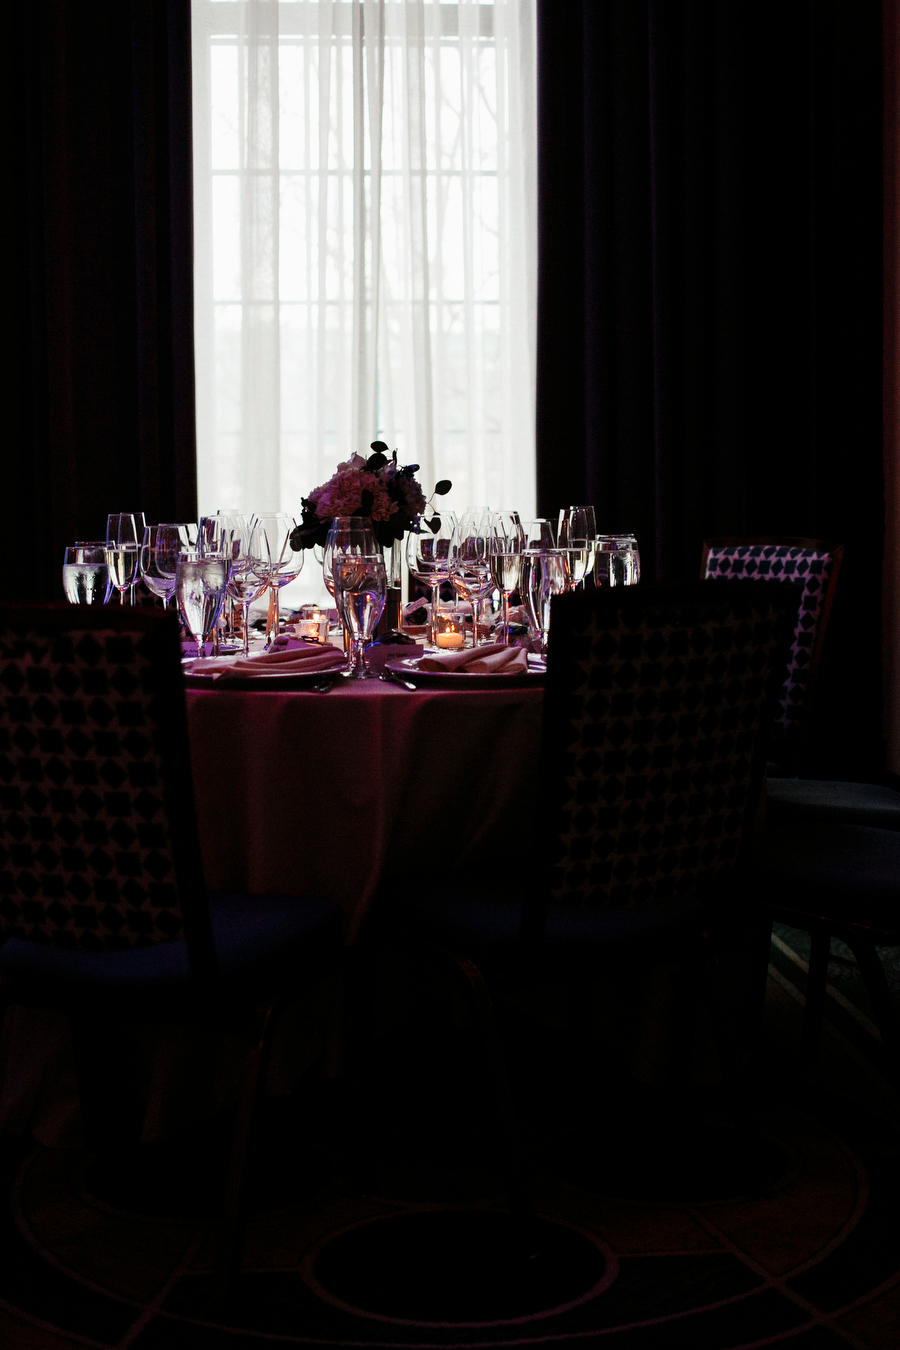 tabledecor from a wedding at the liberty hotel